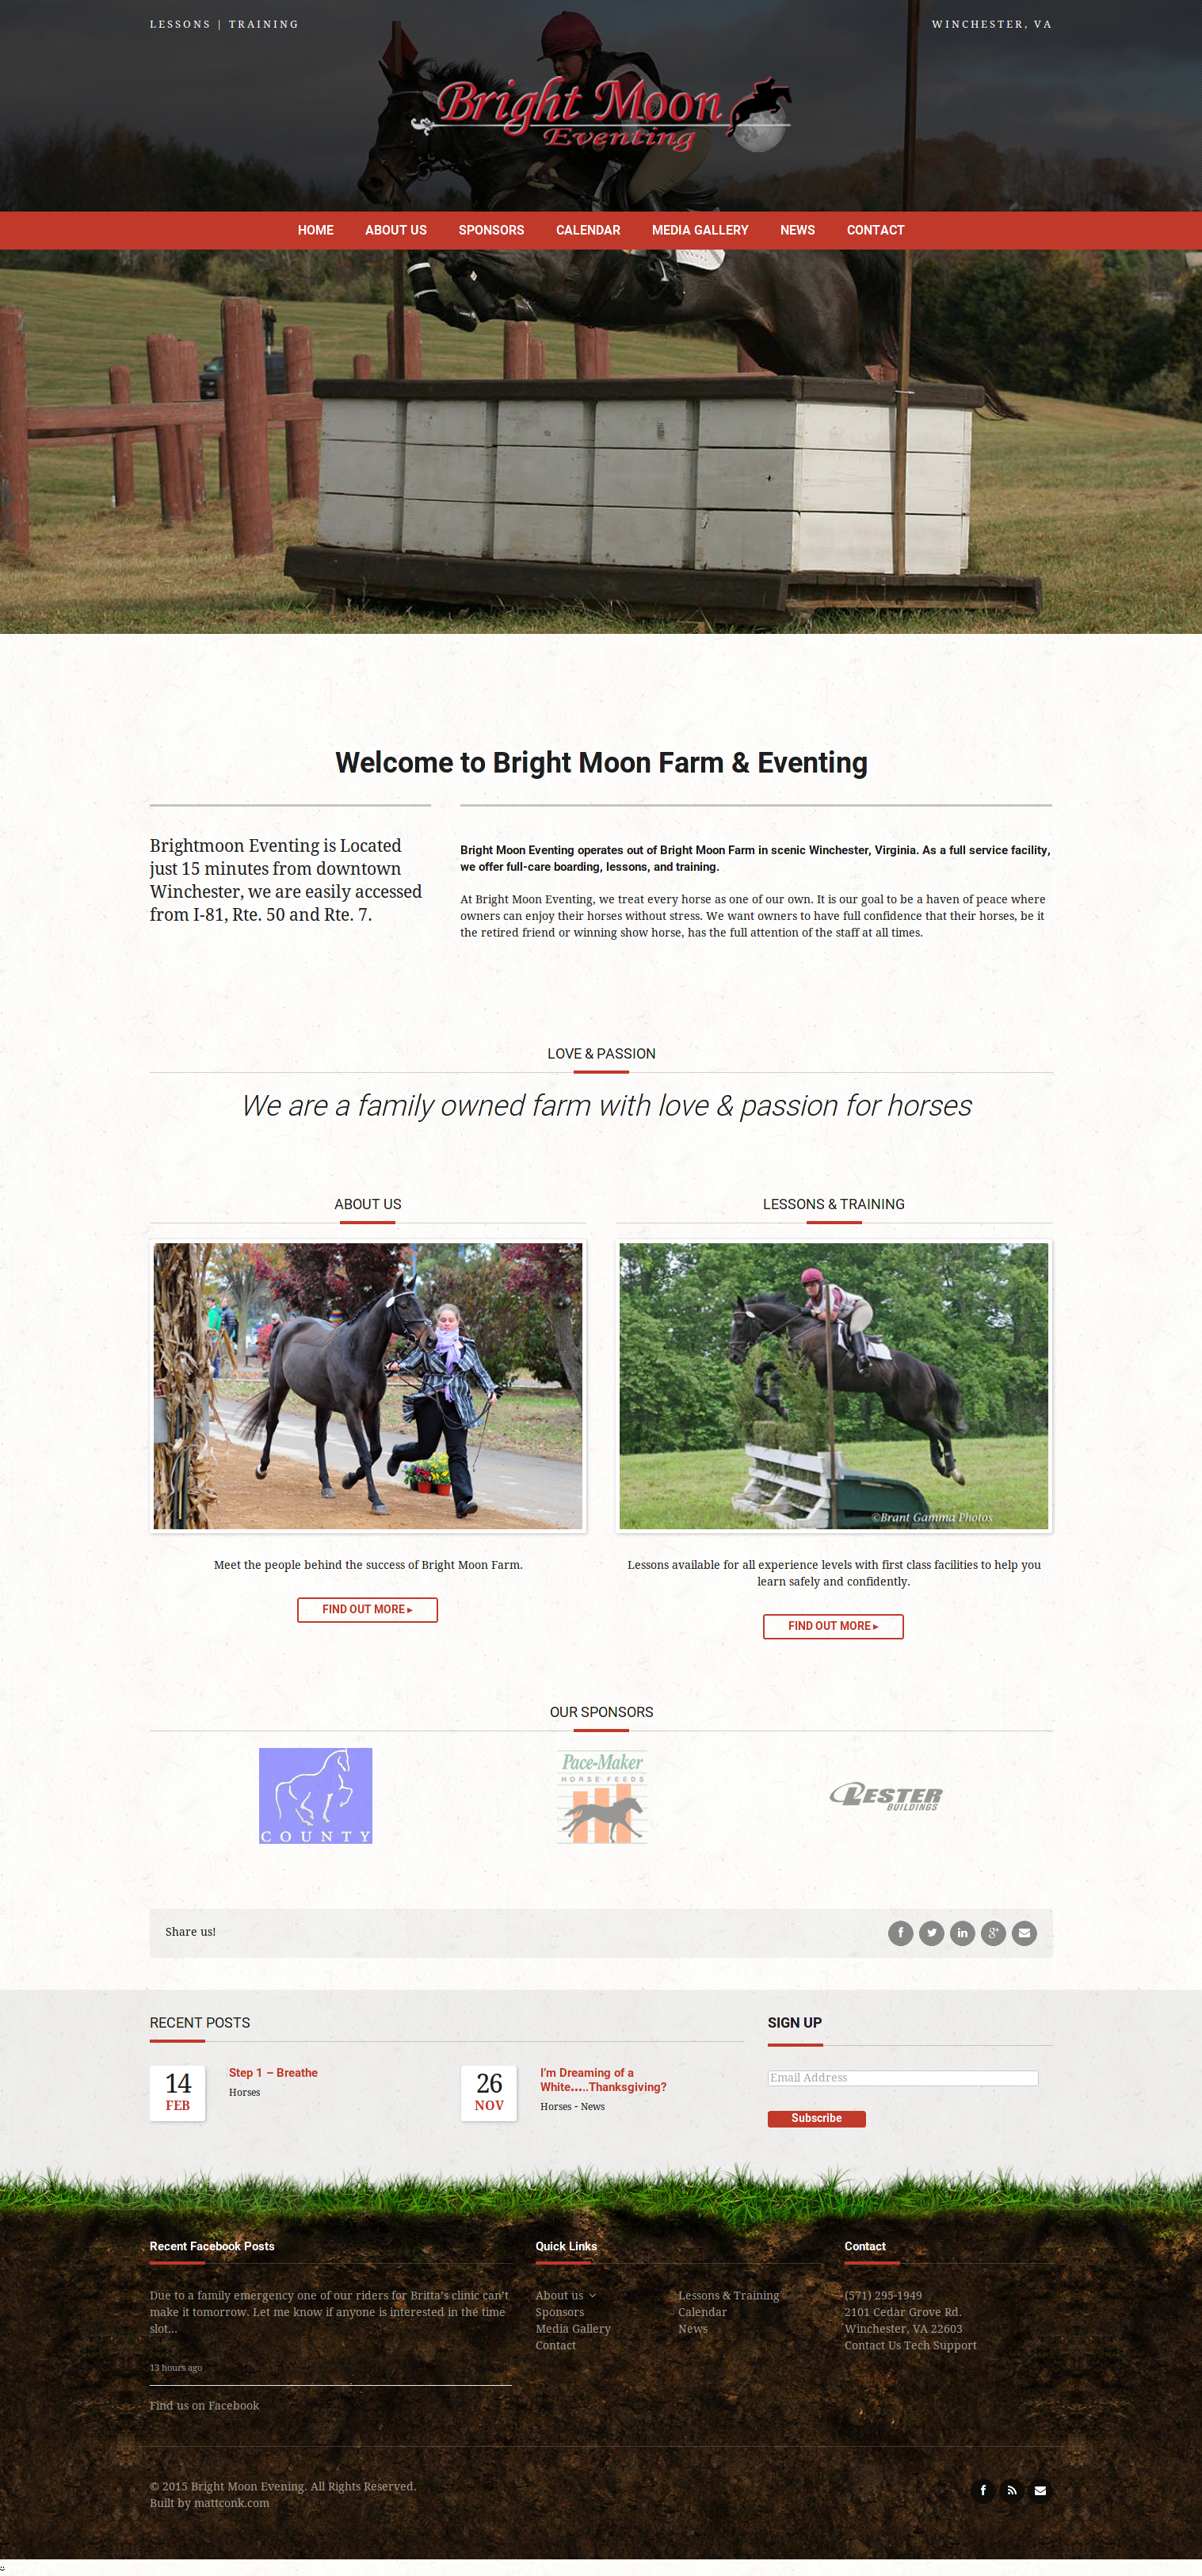 Bright Moon Eventing